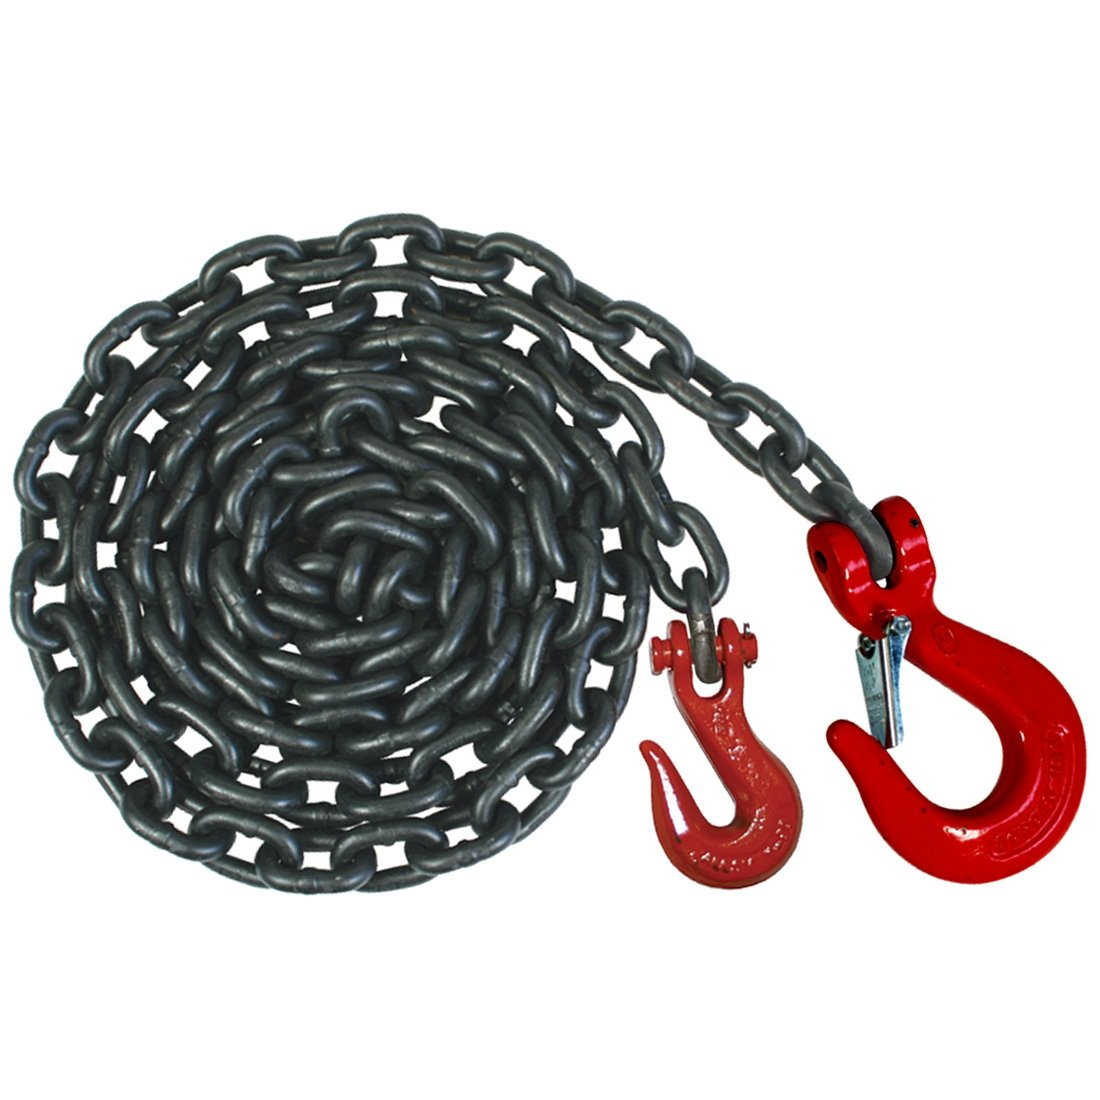 Vulcan Classic Grade 80 Heavy Duty Safety Chain With Grab And Sling Hooks - 7,100 lbs. Safe Working Load (3/8'' x 12')